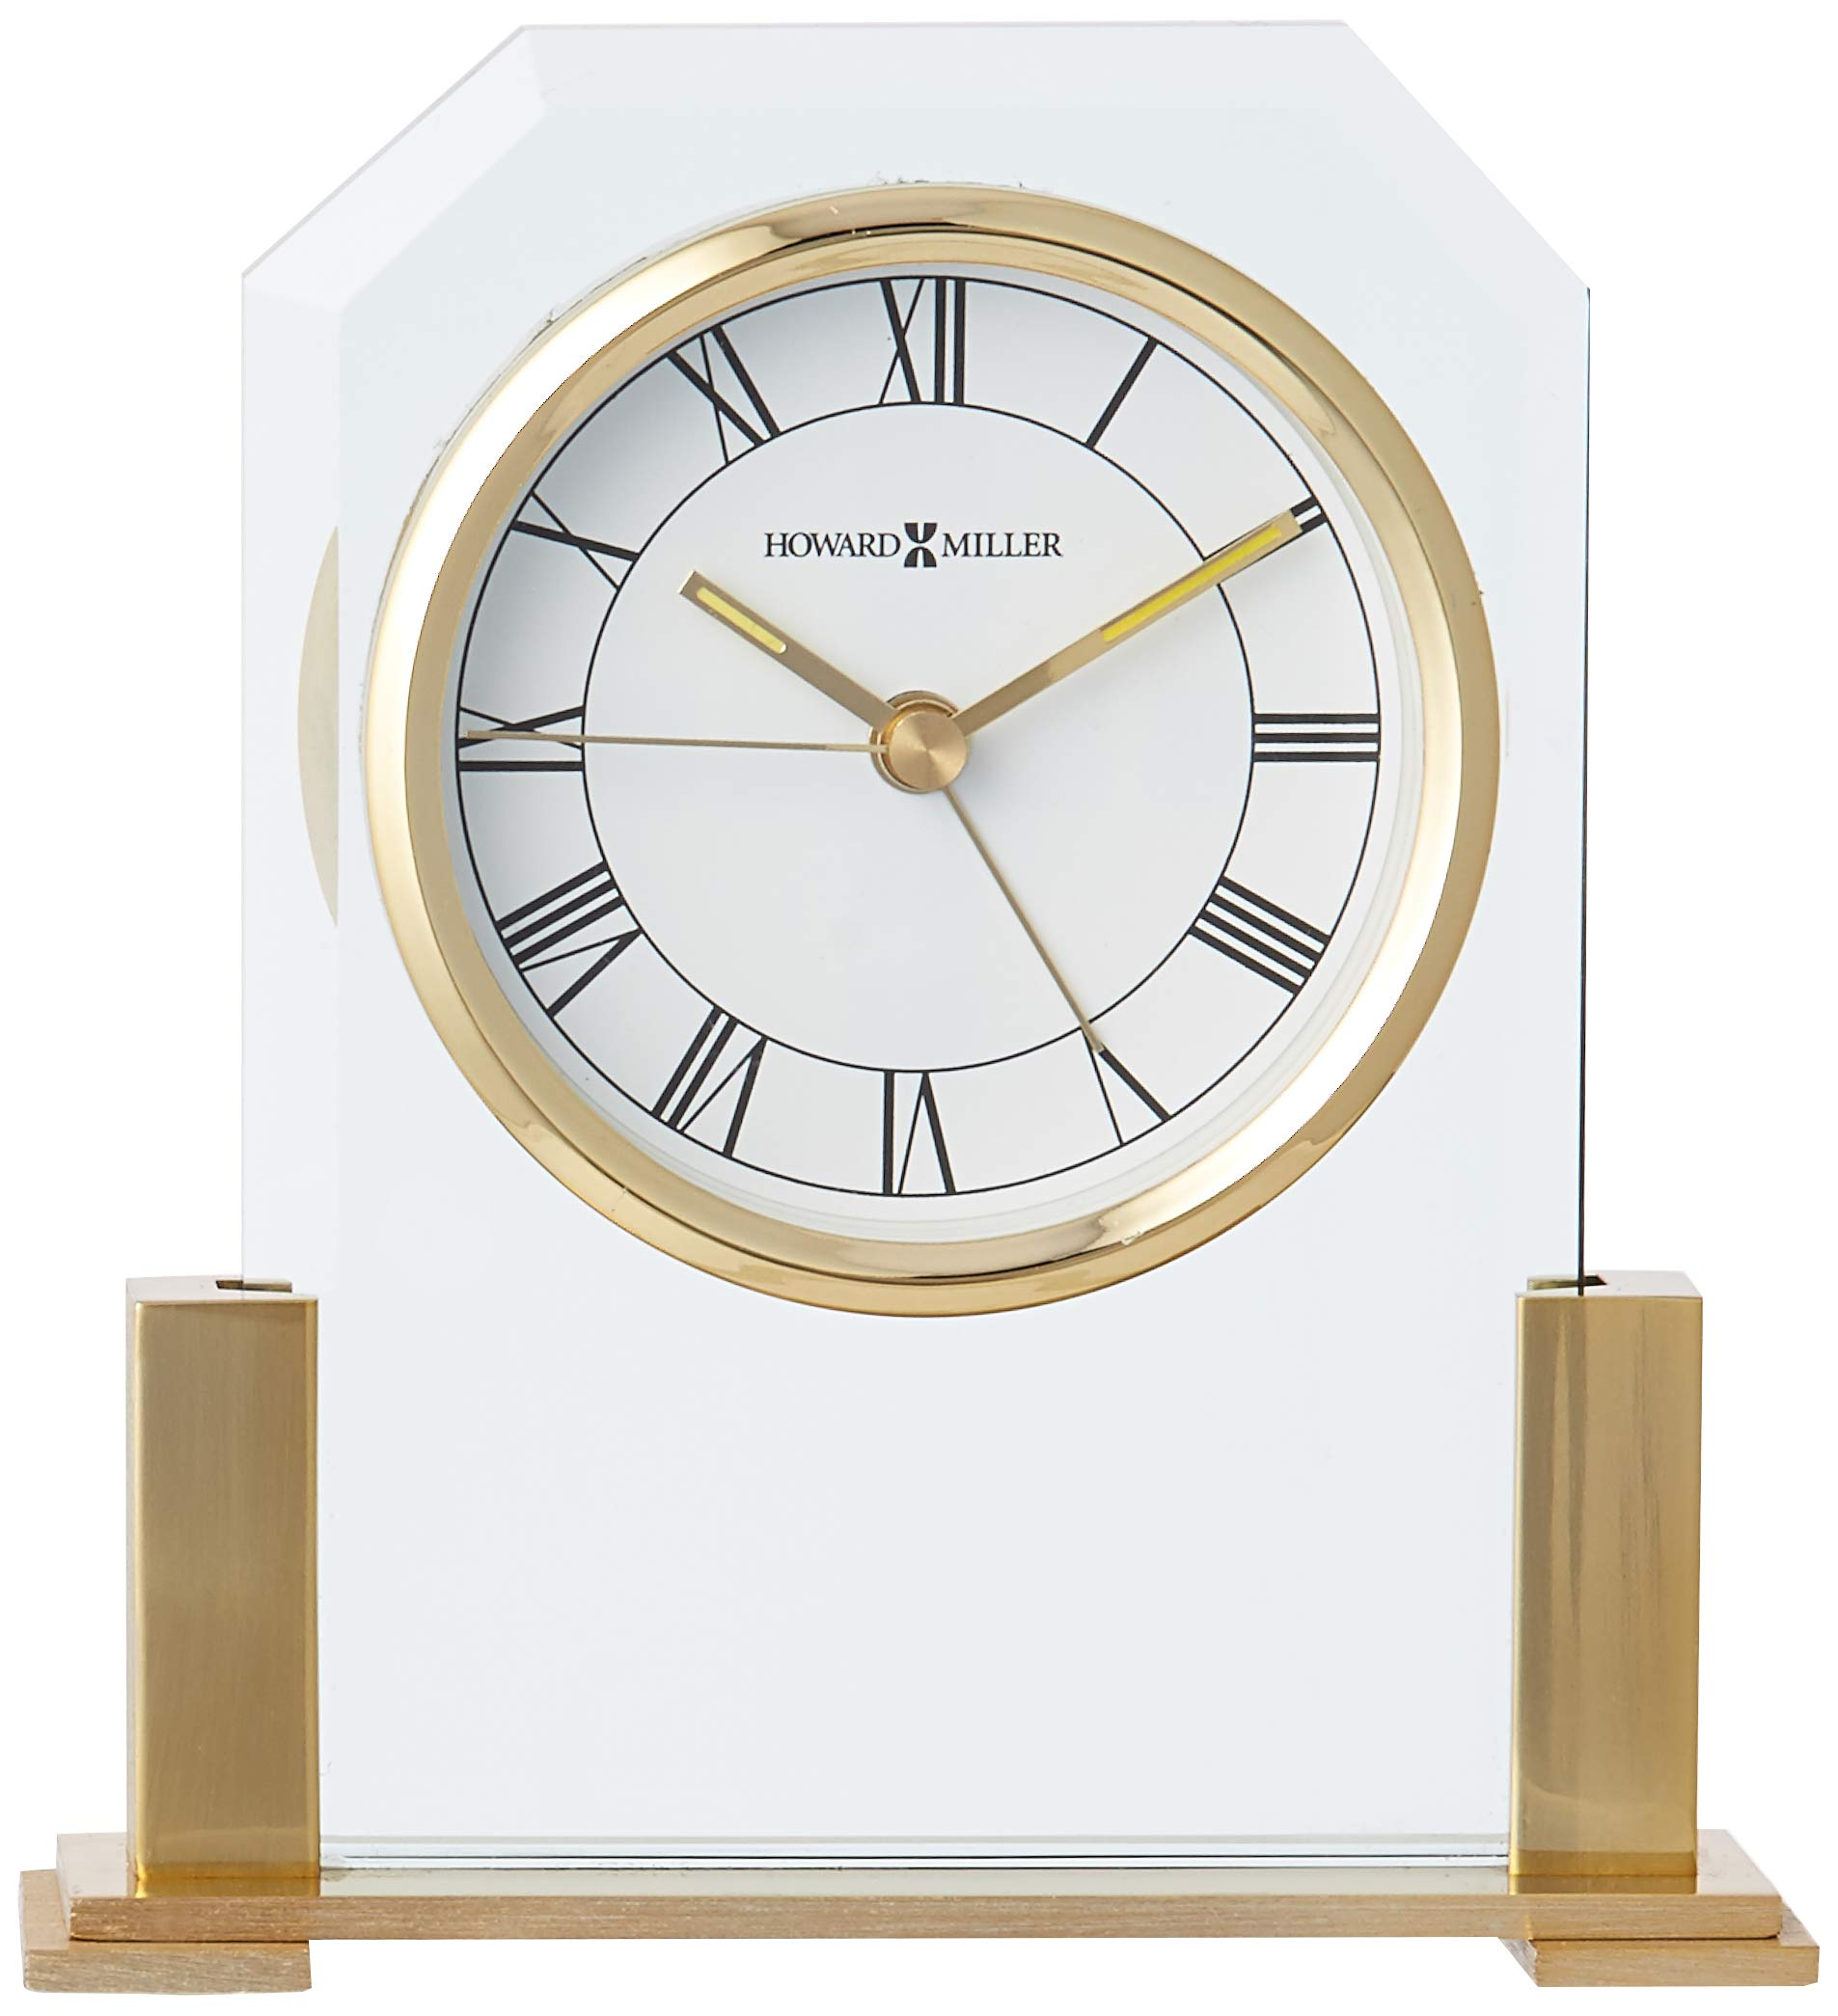 "Howard Miller 613-573 Paramount Table Clock - Polished brass-finished and beveled glass alarm clock. White dial with black numerals and luminous insets on the hour and minute hands, and a glass crystal. .75"" x 2.5"" Brass plate included for personalization.  (customization charges are additional) - clocks, bedroom-decor, bedroom - 71XIRm 2V9L -"